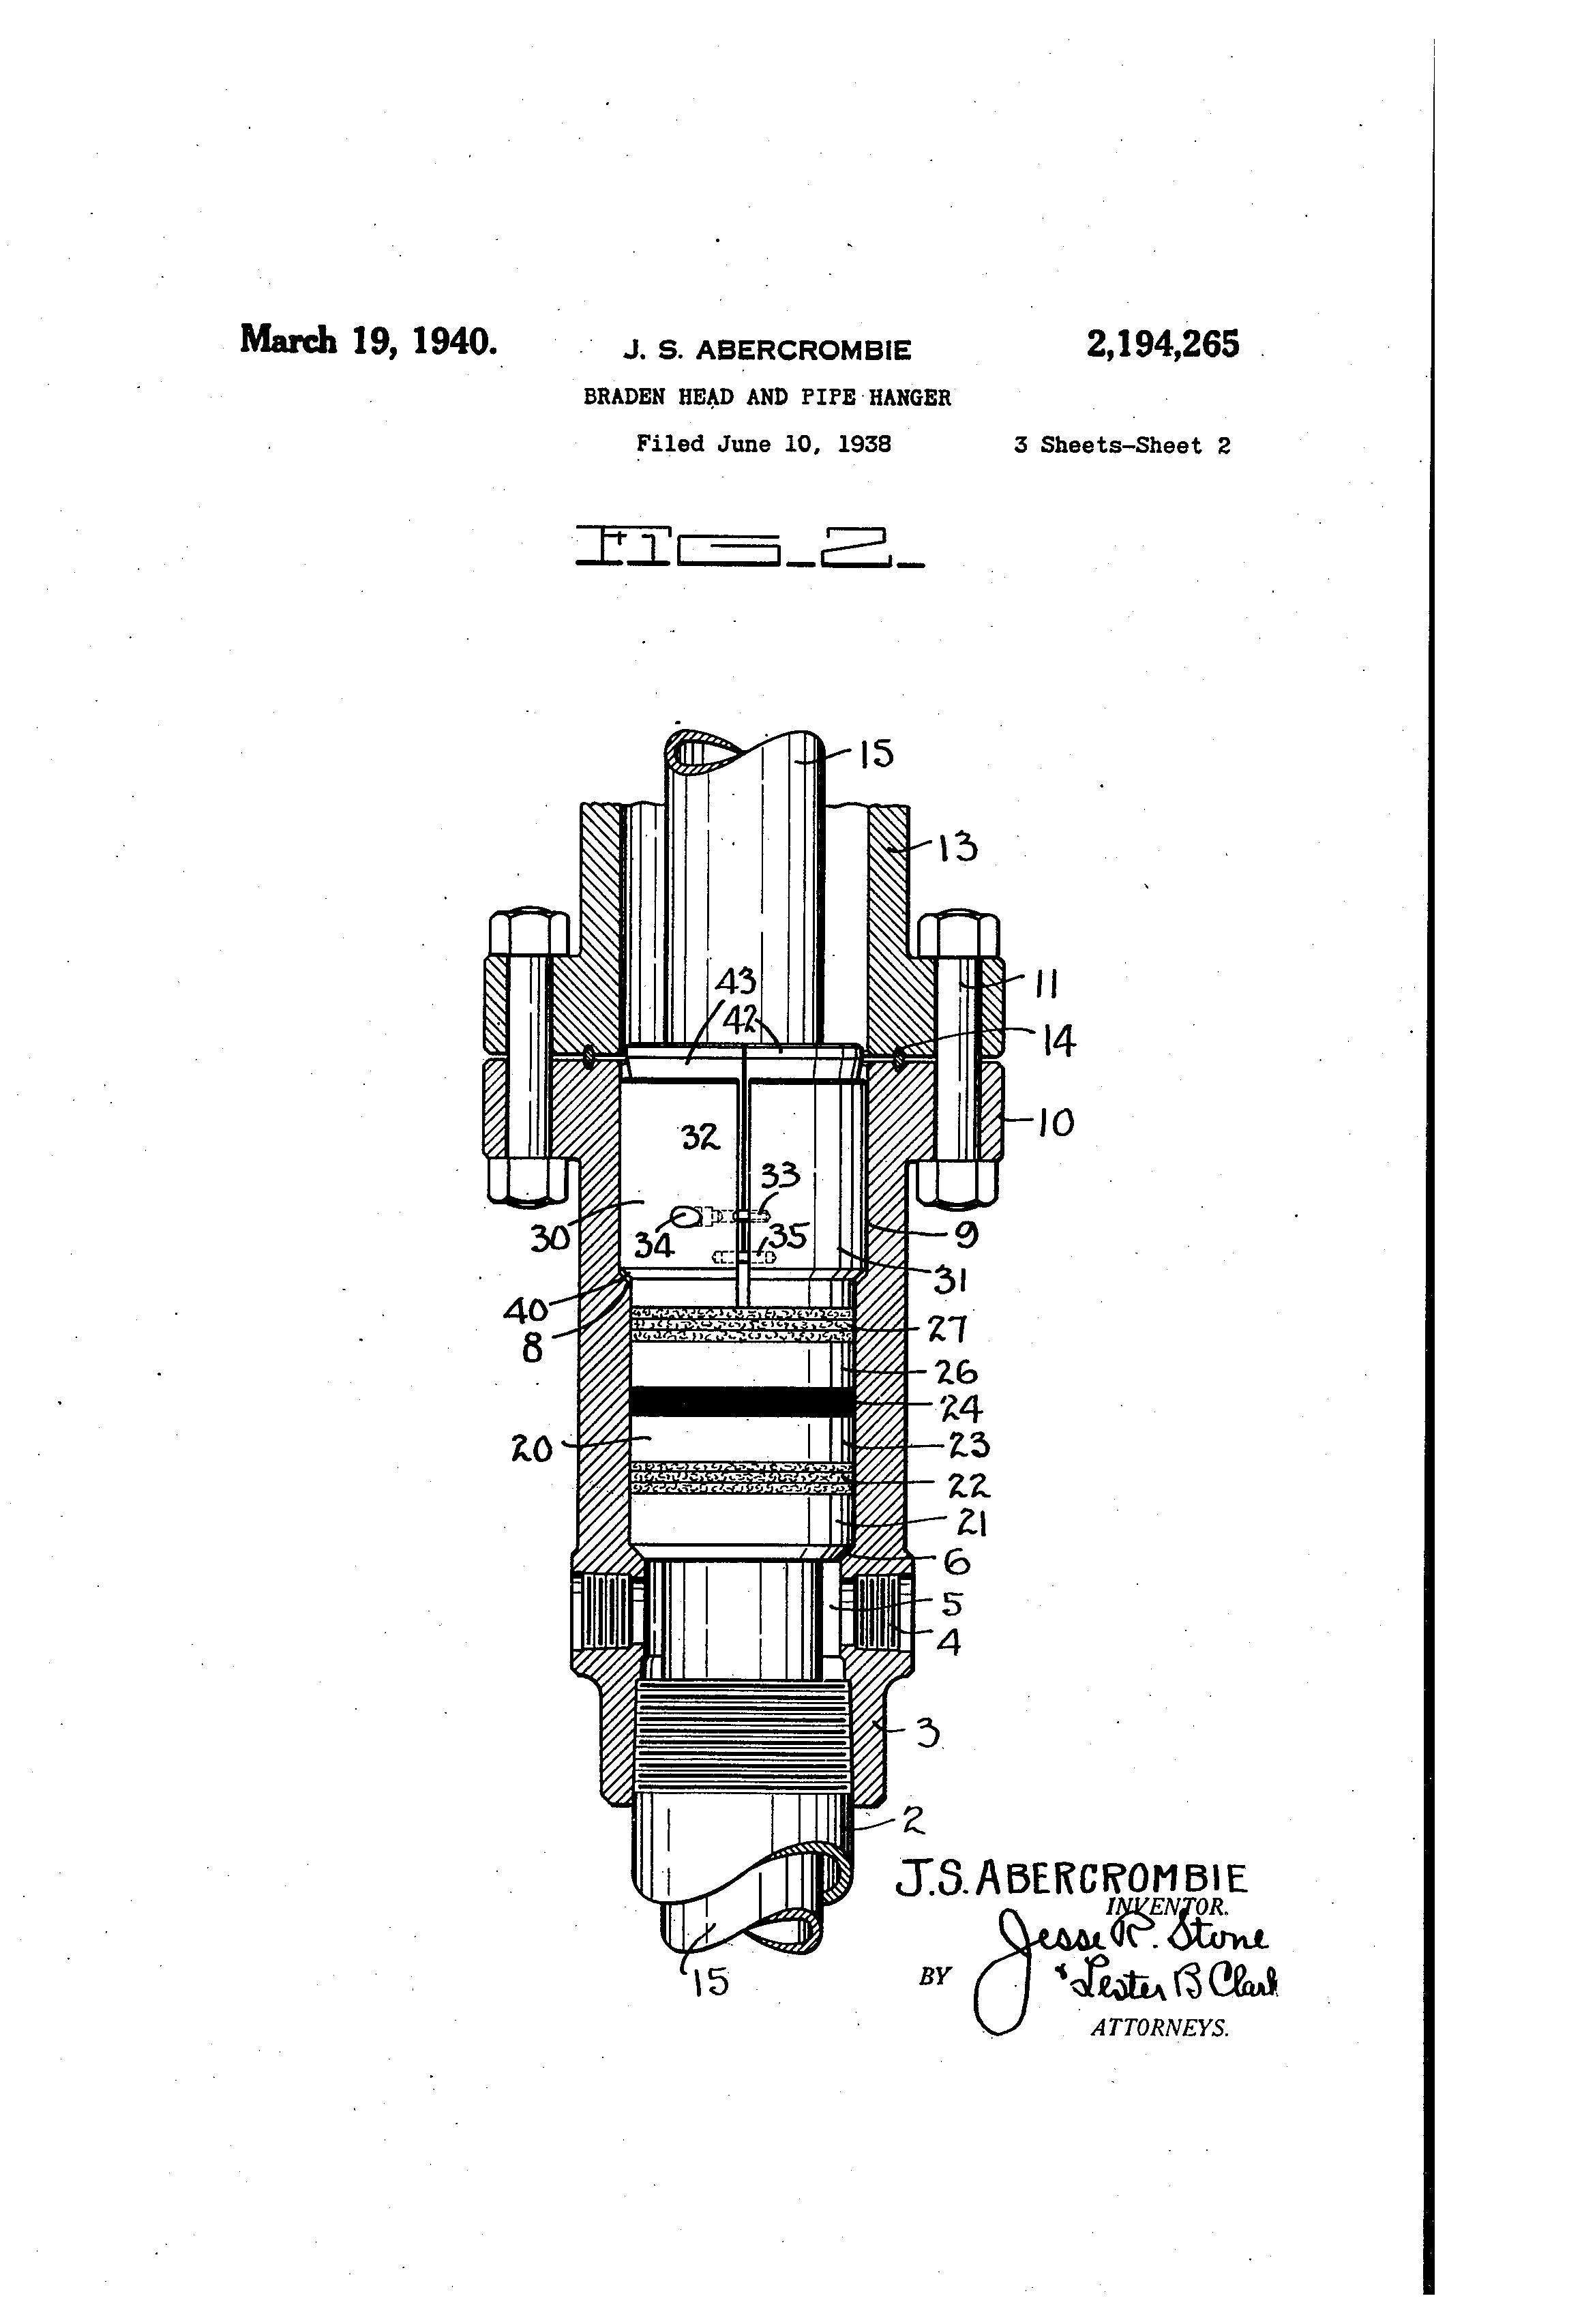 patent us2194265 - braden head and pipe hanger